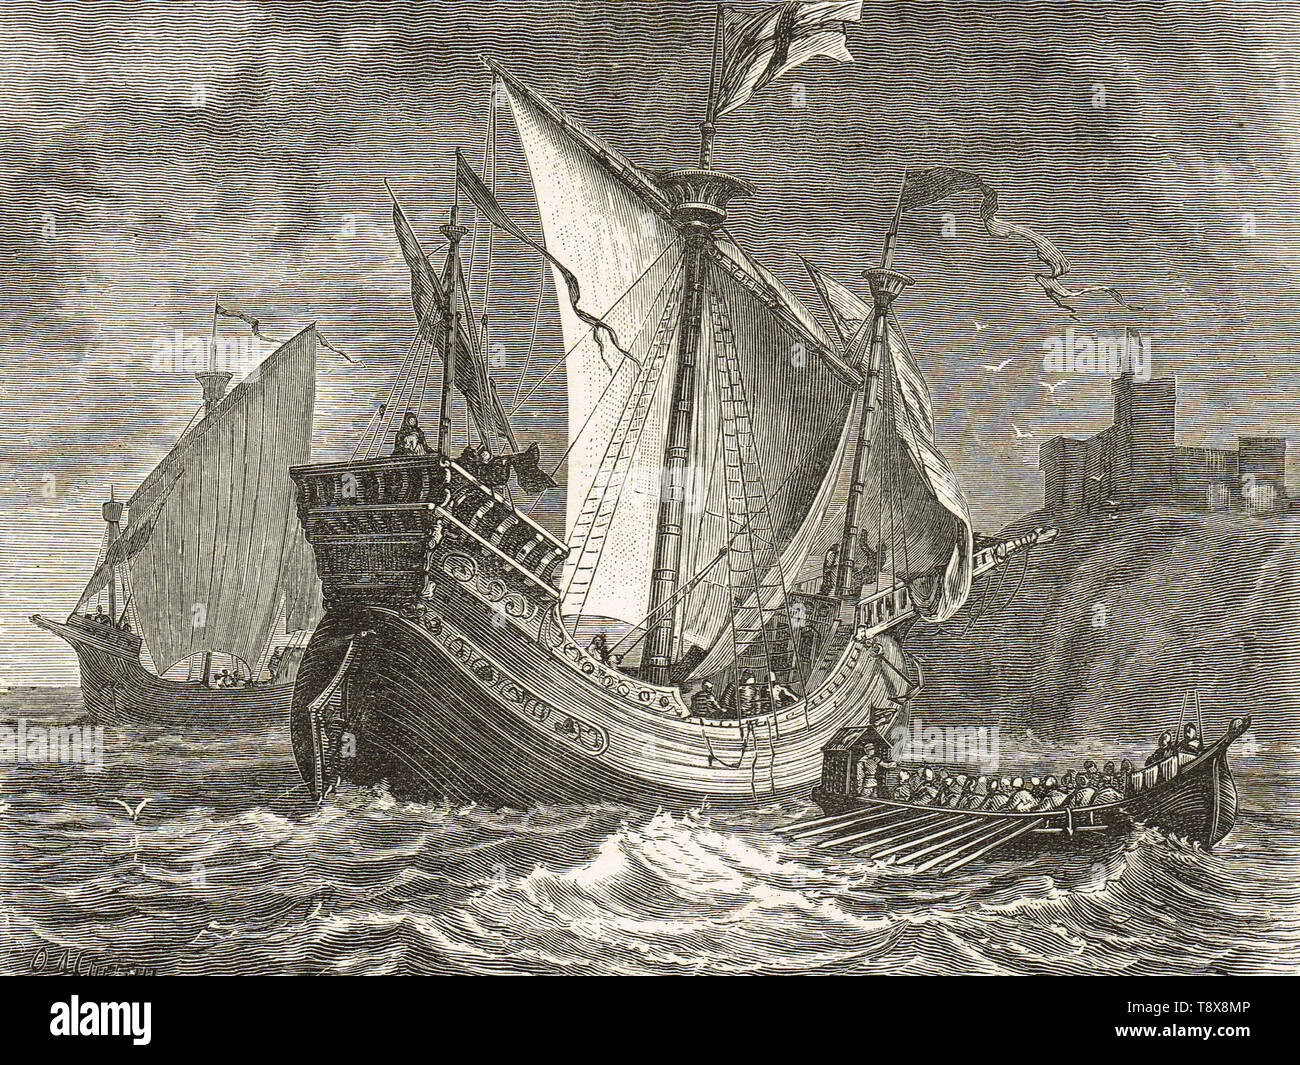 English ships of the Fifteenth century - Stock Image